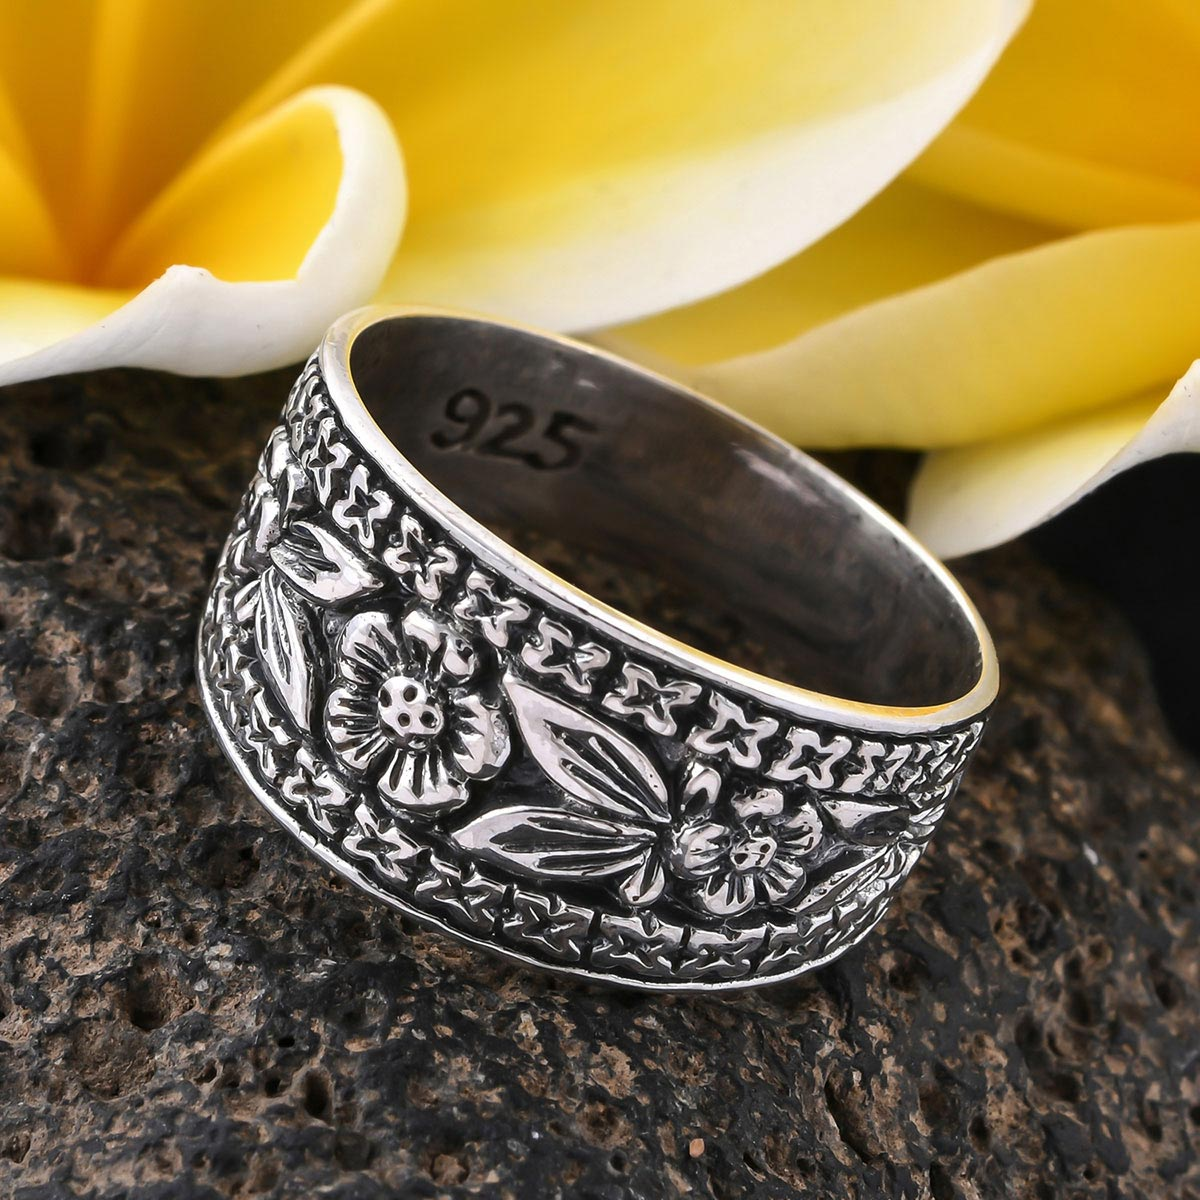 BALI LEGACY Ring in Sterling Silver (Size 6.0) (Avg 4.7 g)